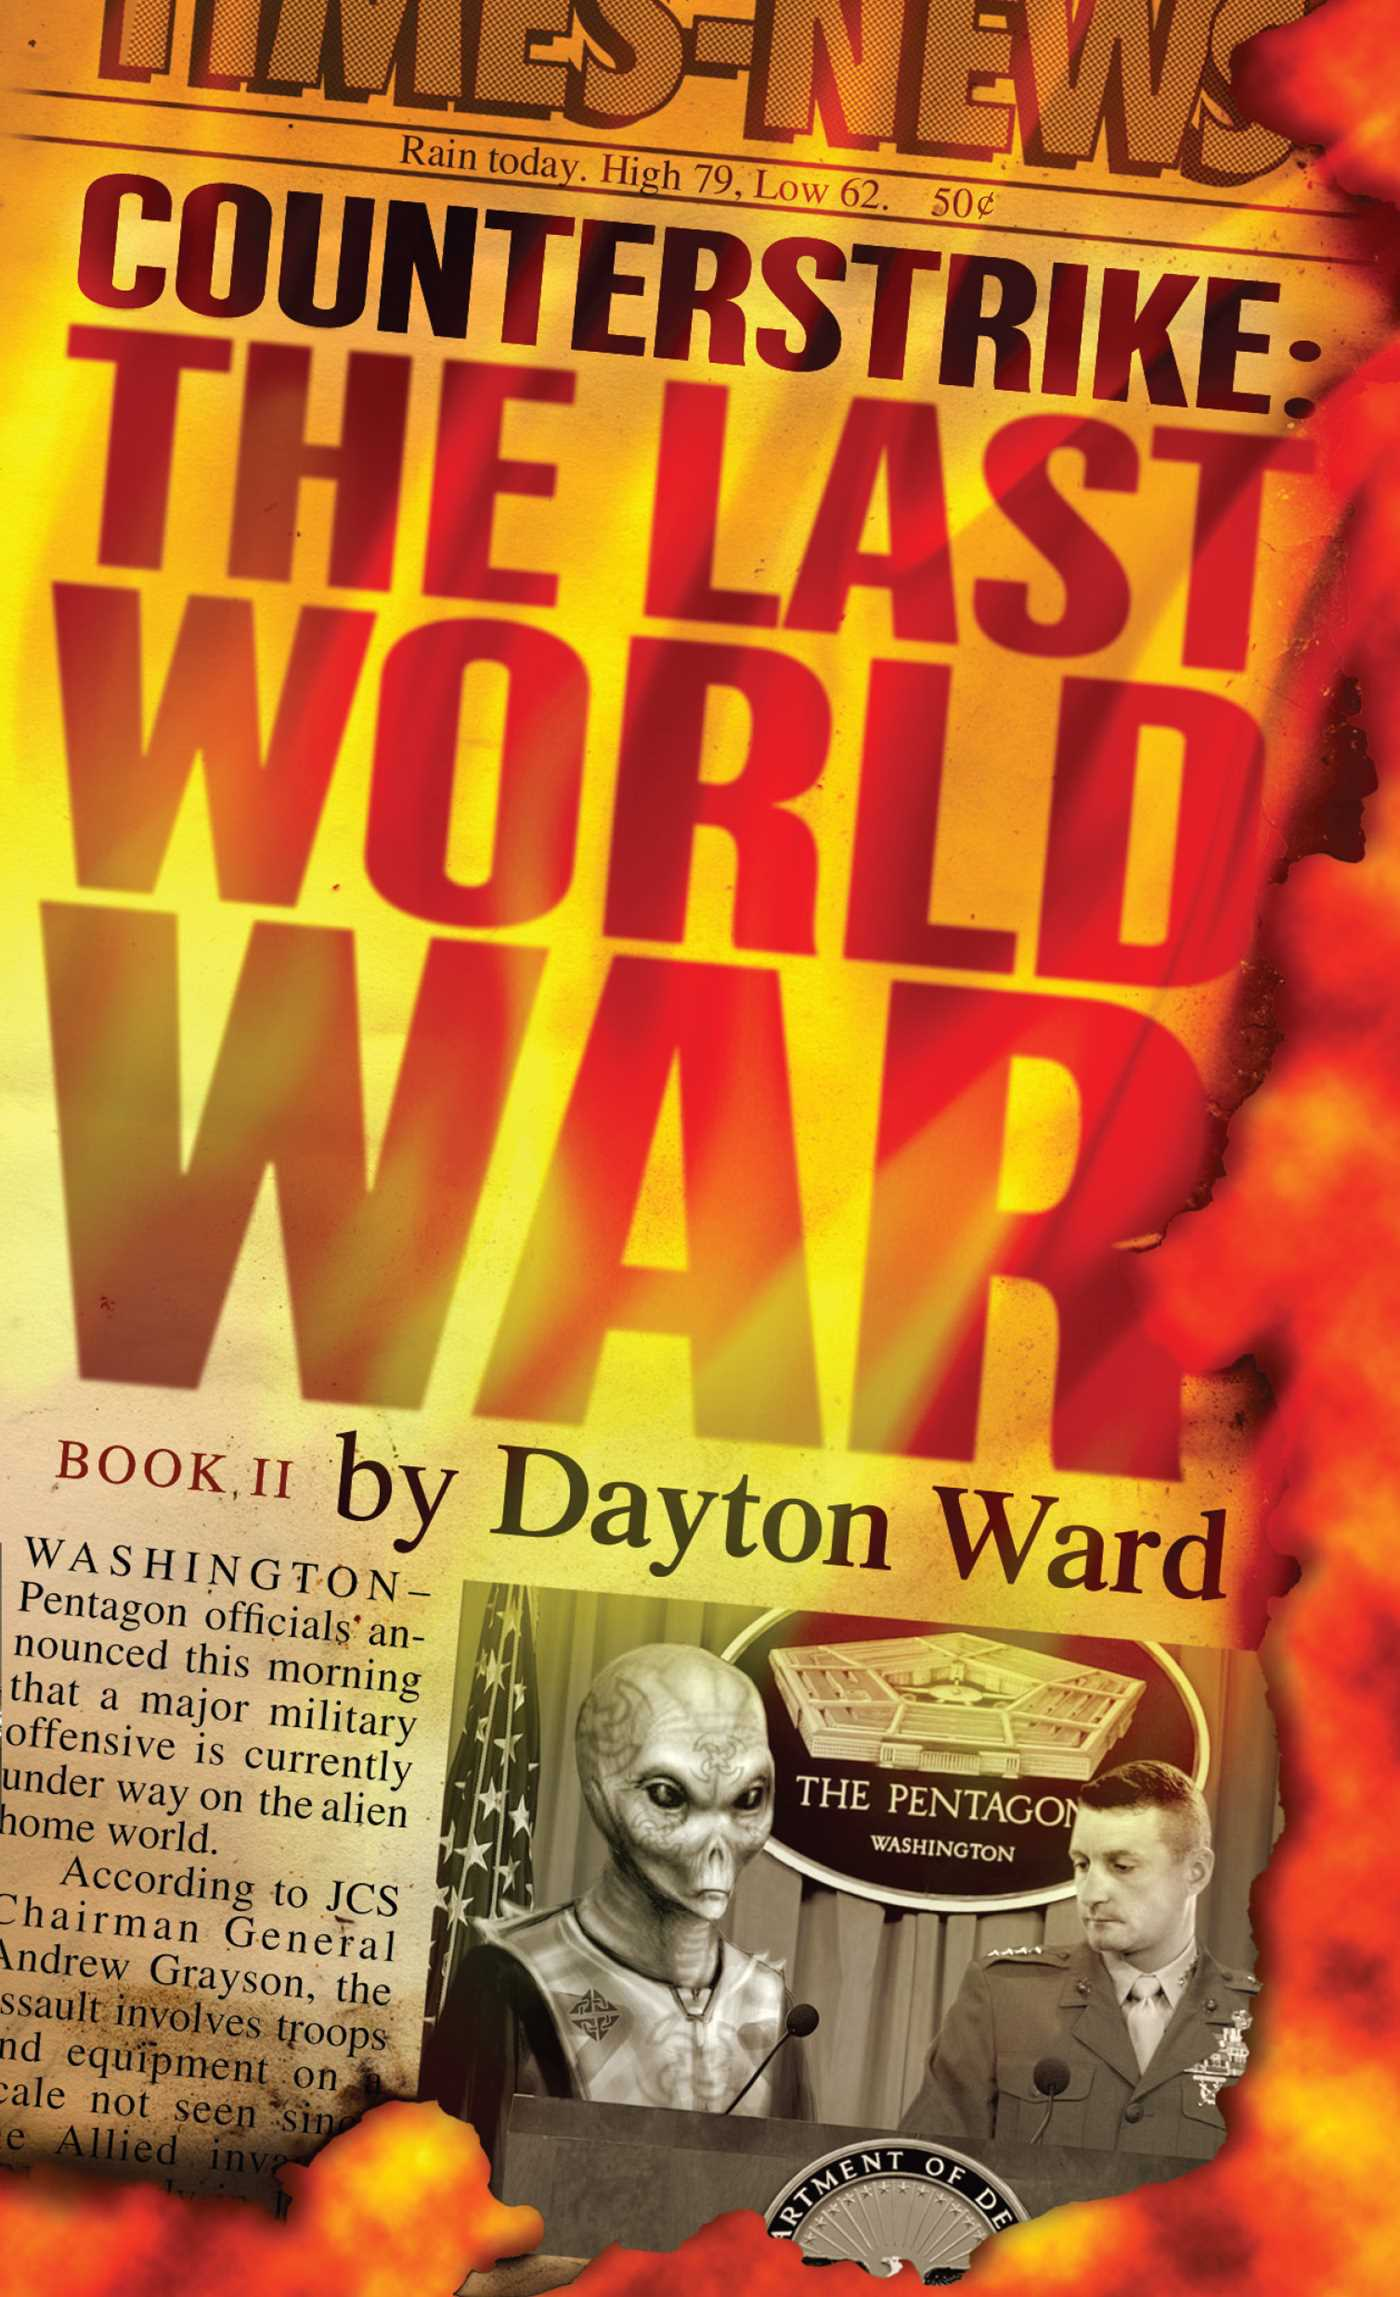 Counterstrike the last world war book 2 9781439167977 hr